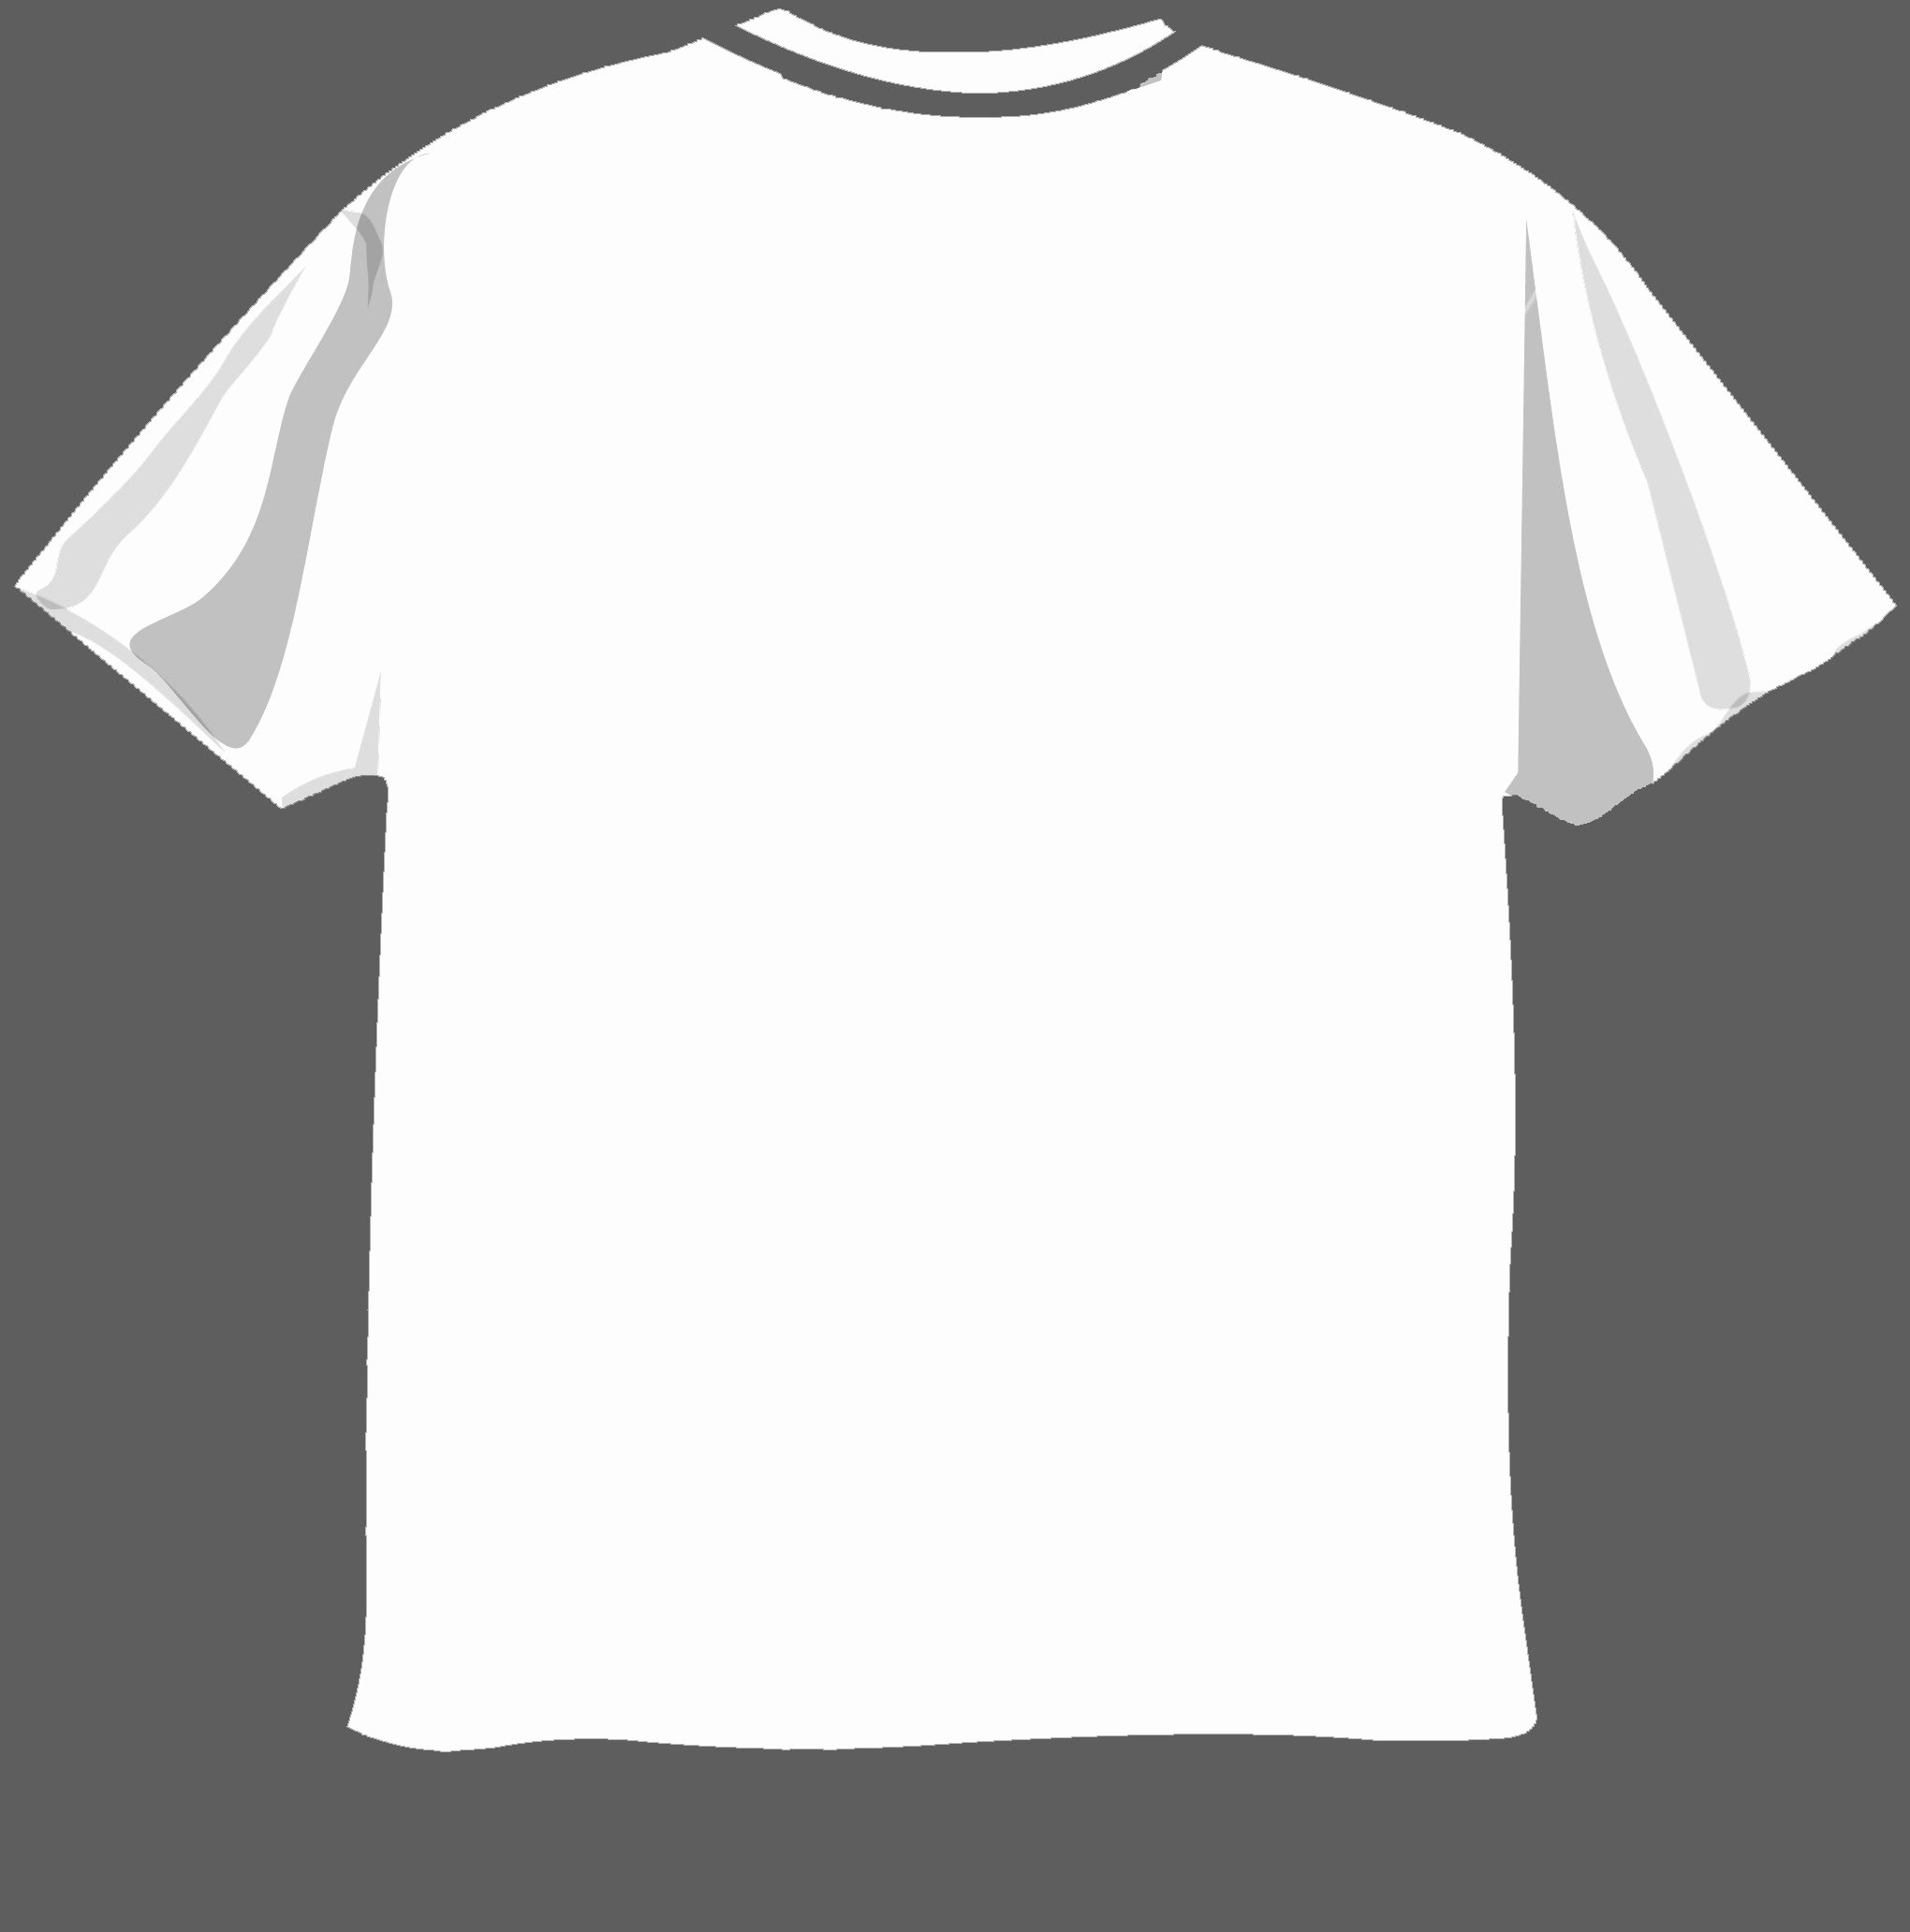 16 Blank T Shirt Template Shop Blank T Shirt